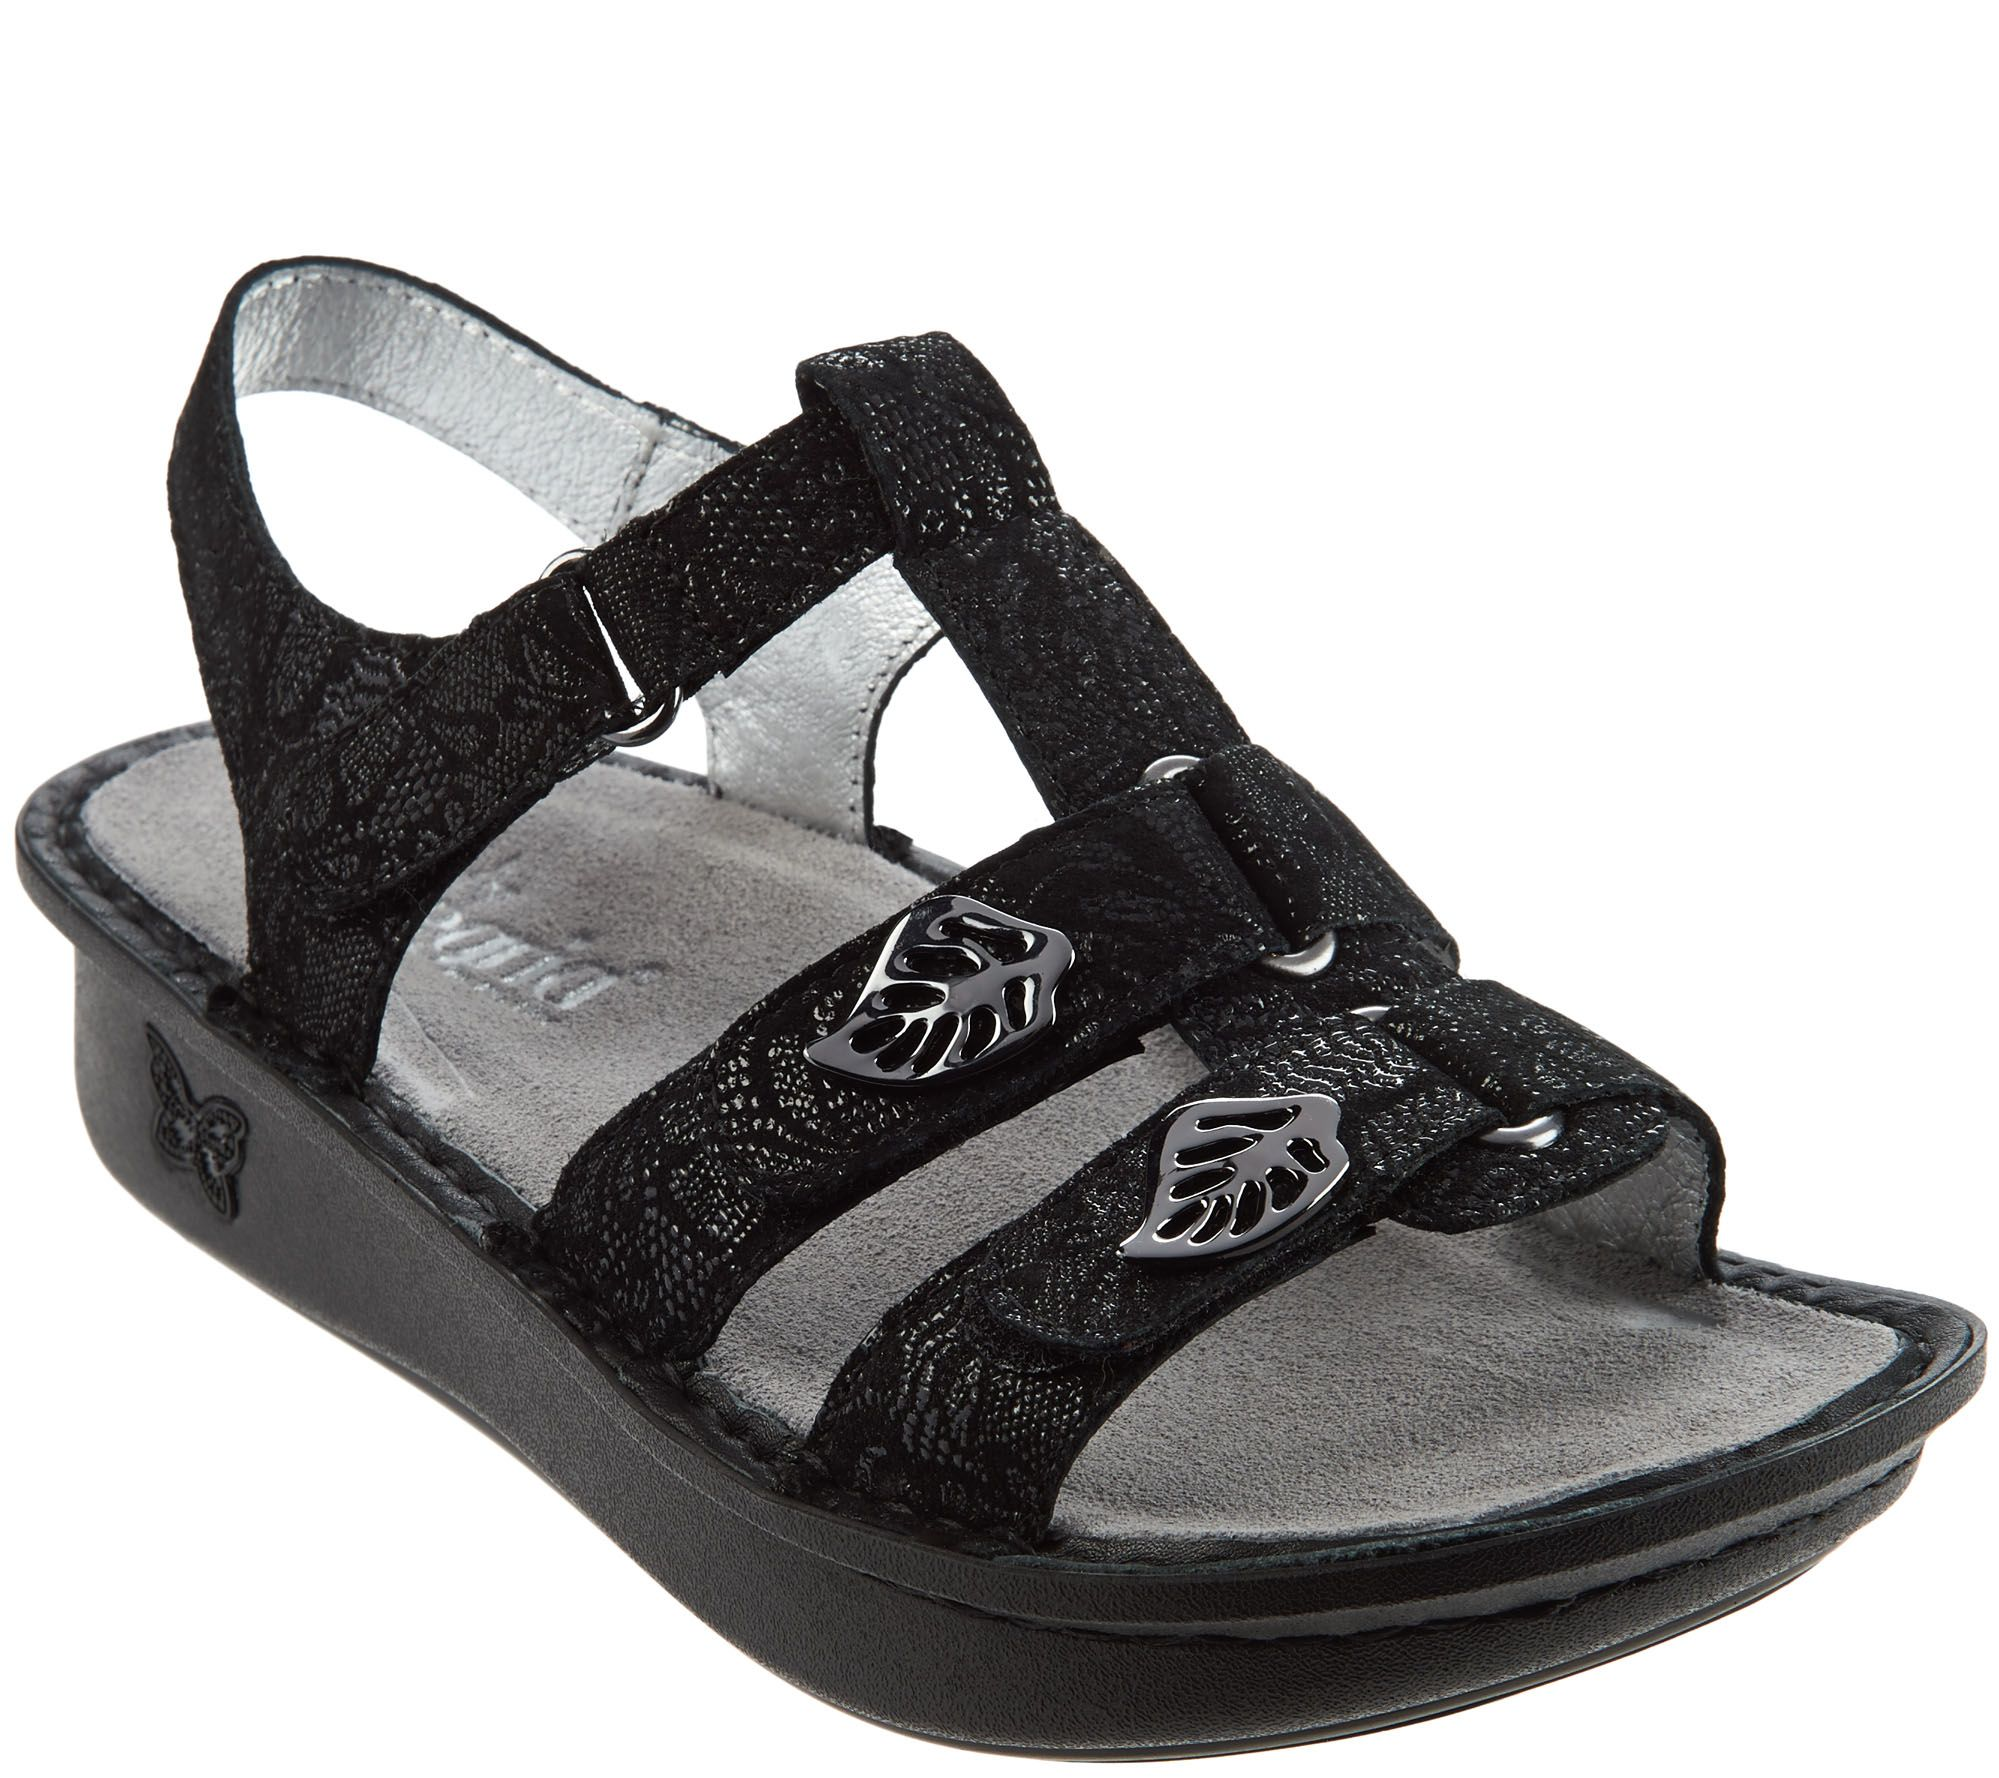 Alegria Leather Multi-Strap Sandals w/ Backstrap - Kleo - A274226